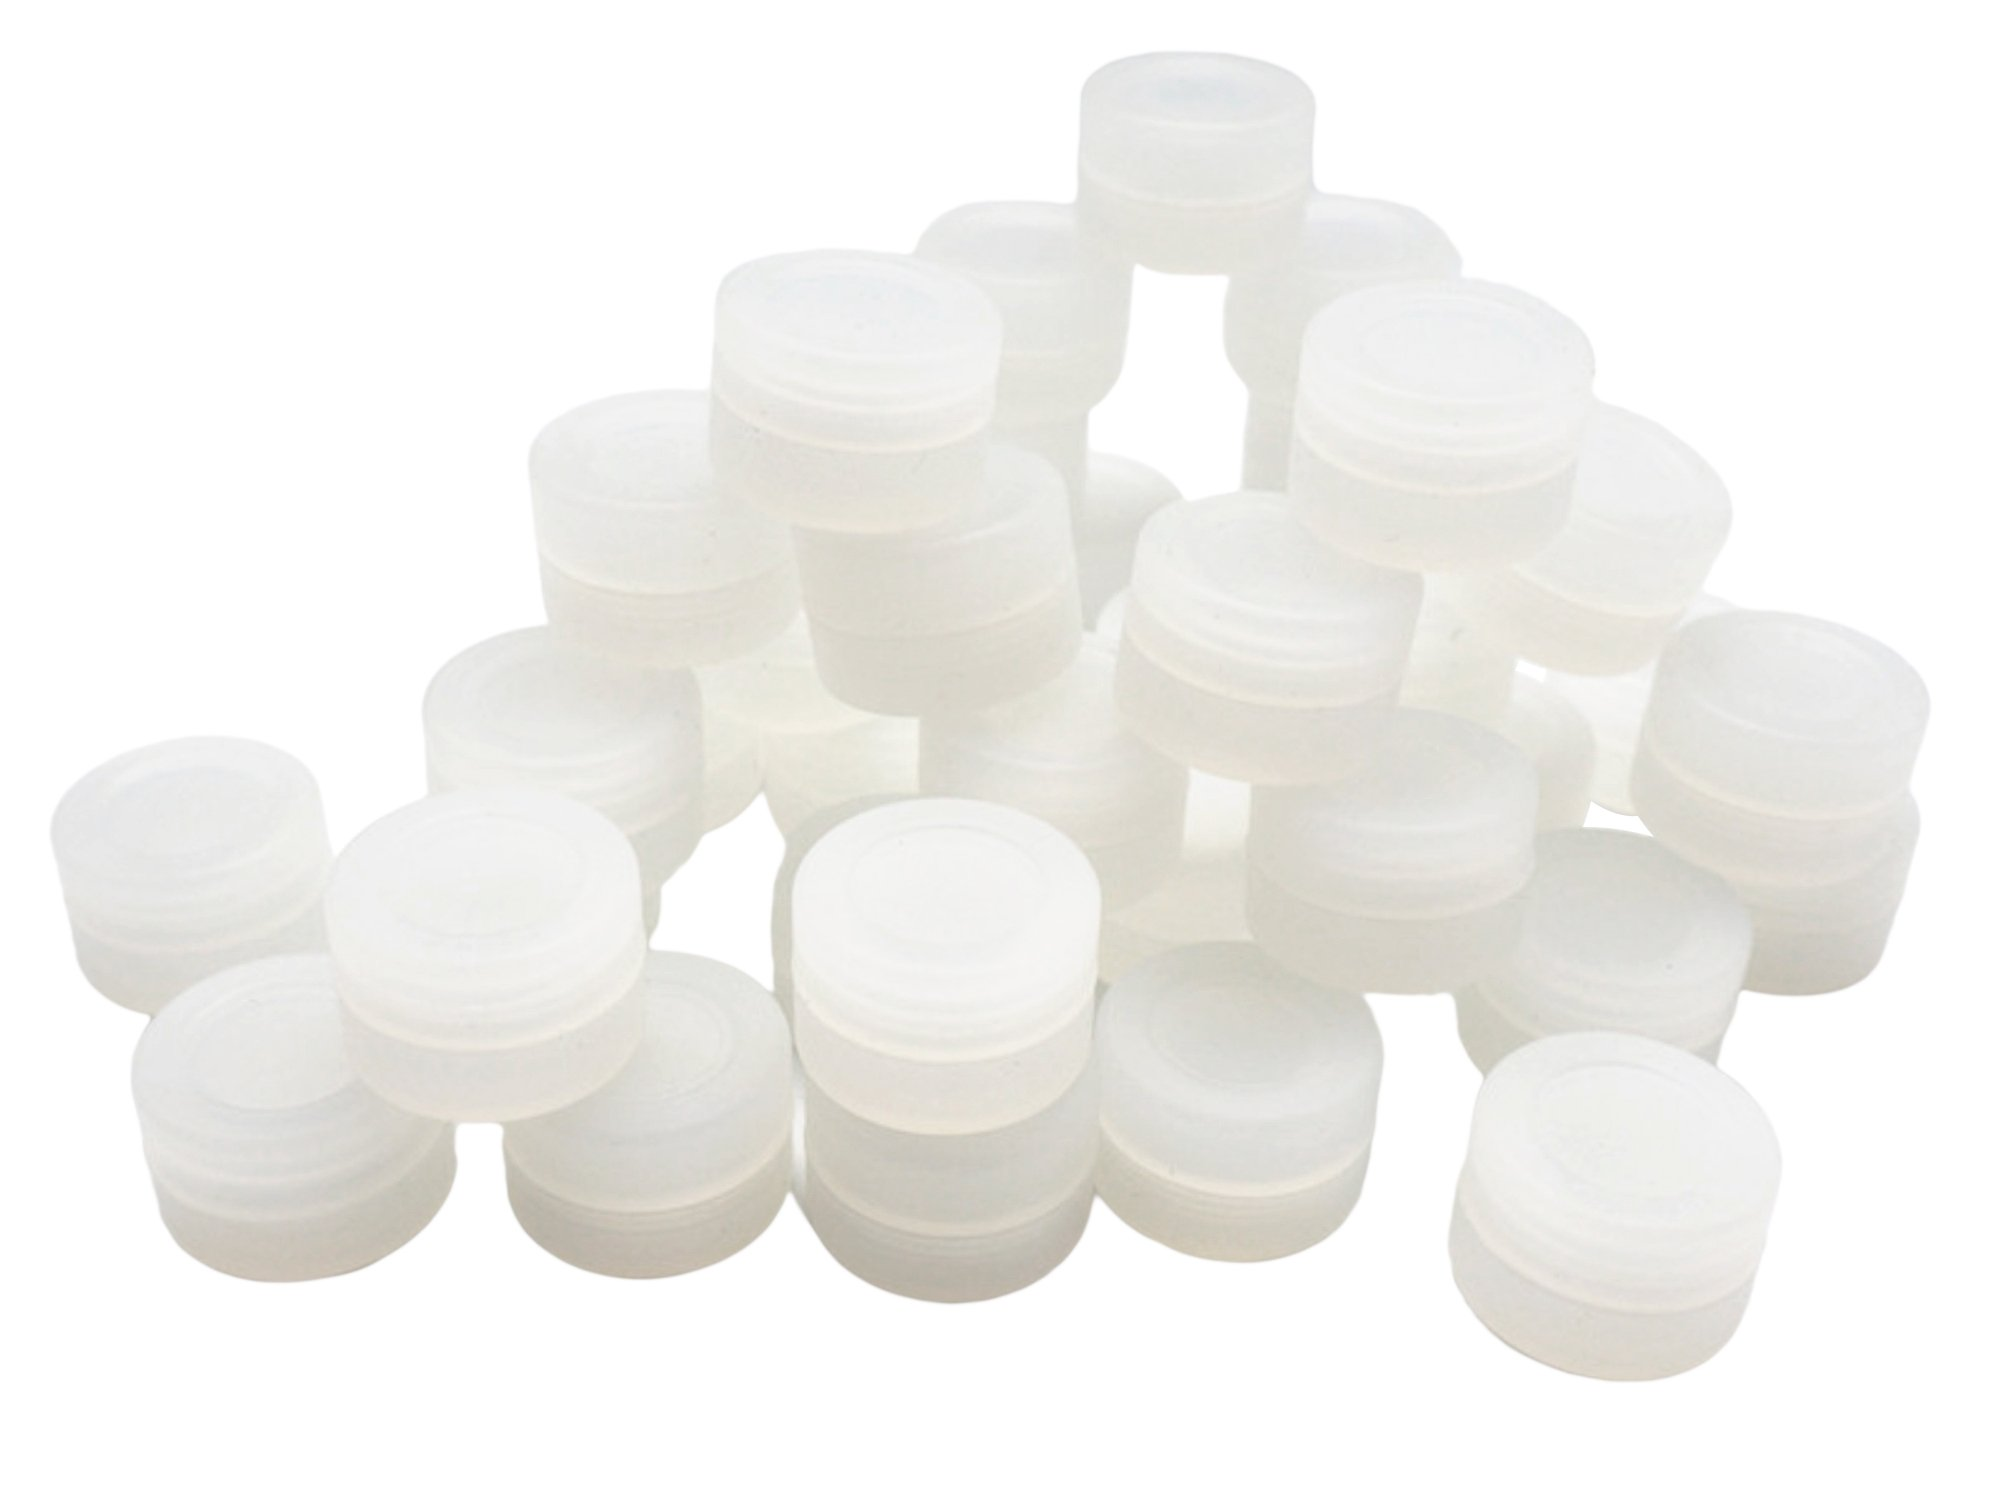 YHSWE 2ml 1000pcs Clear Silicon Containers Storage Jar Seals Oil Wax Concentrate